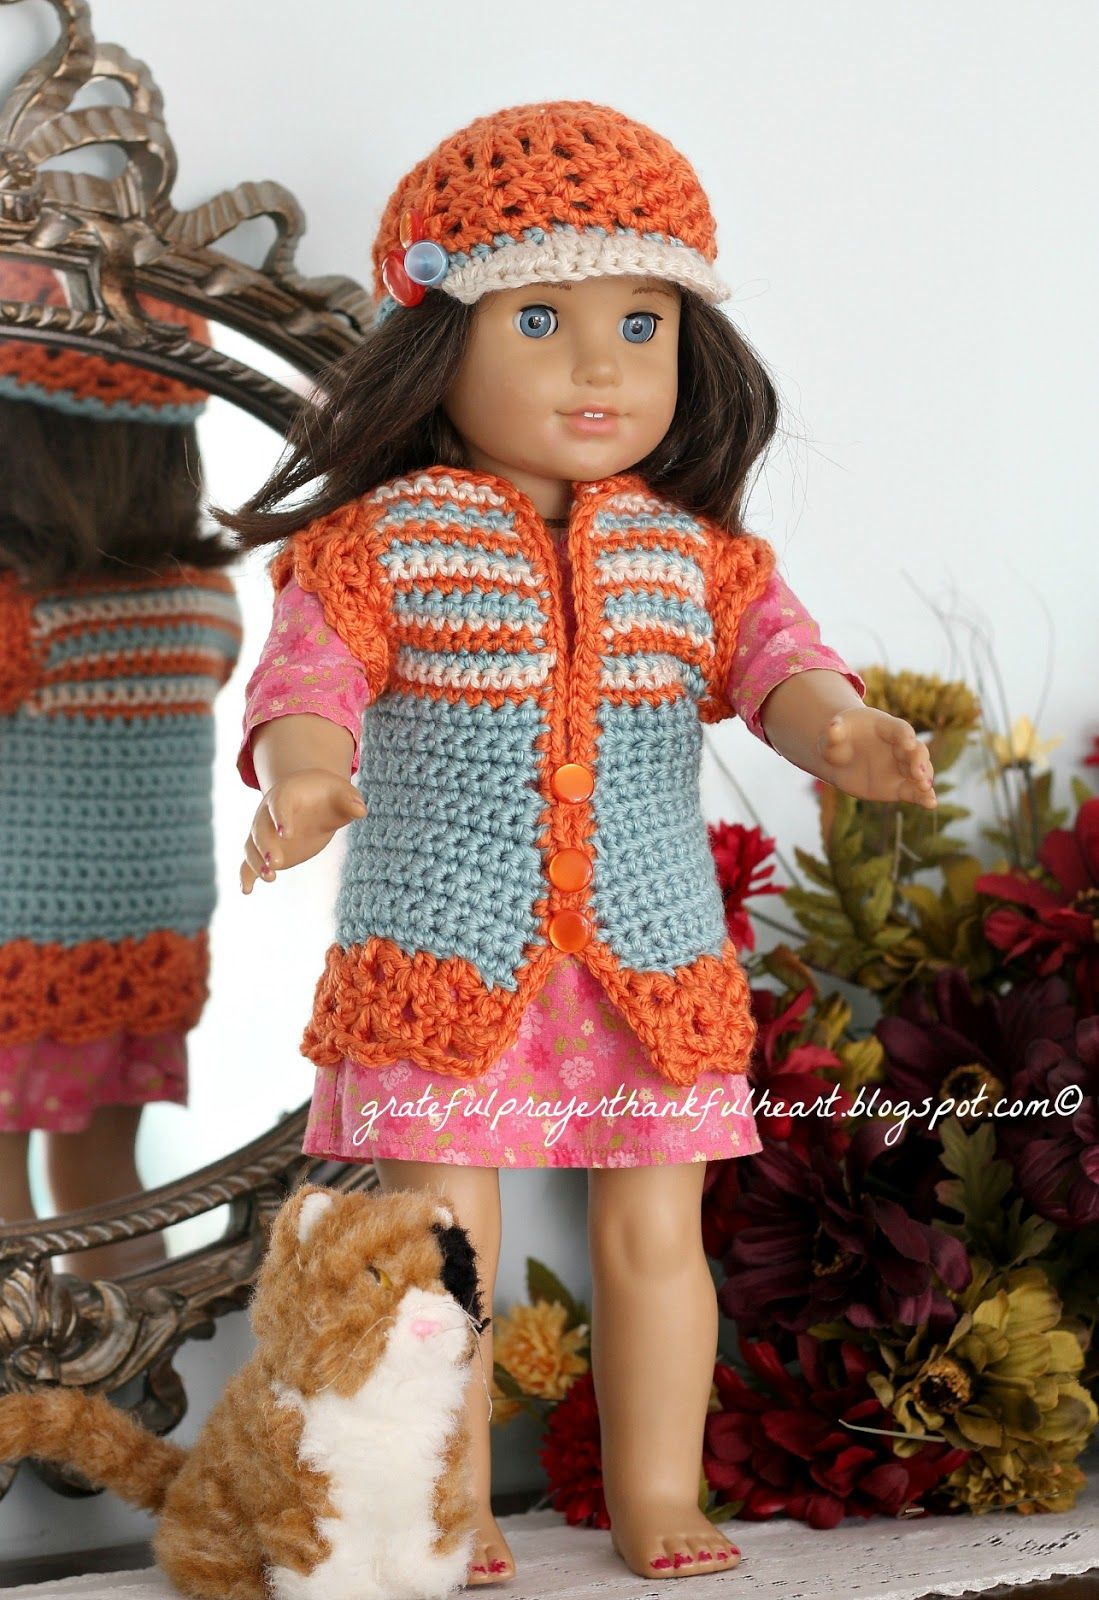 American Girl Crochet Pattern for dolls | Journey girls, Girl dolls ...